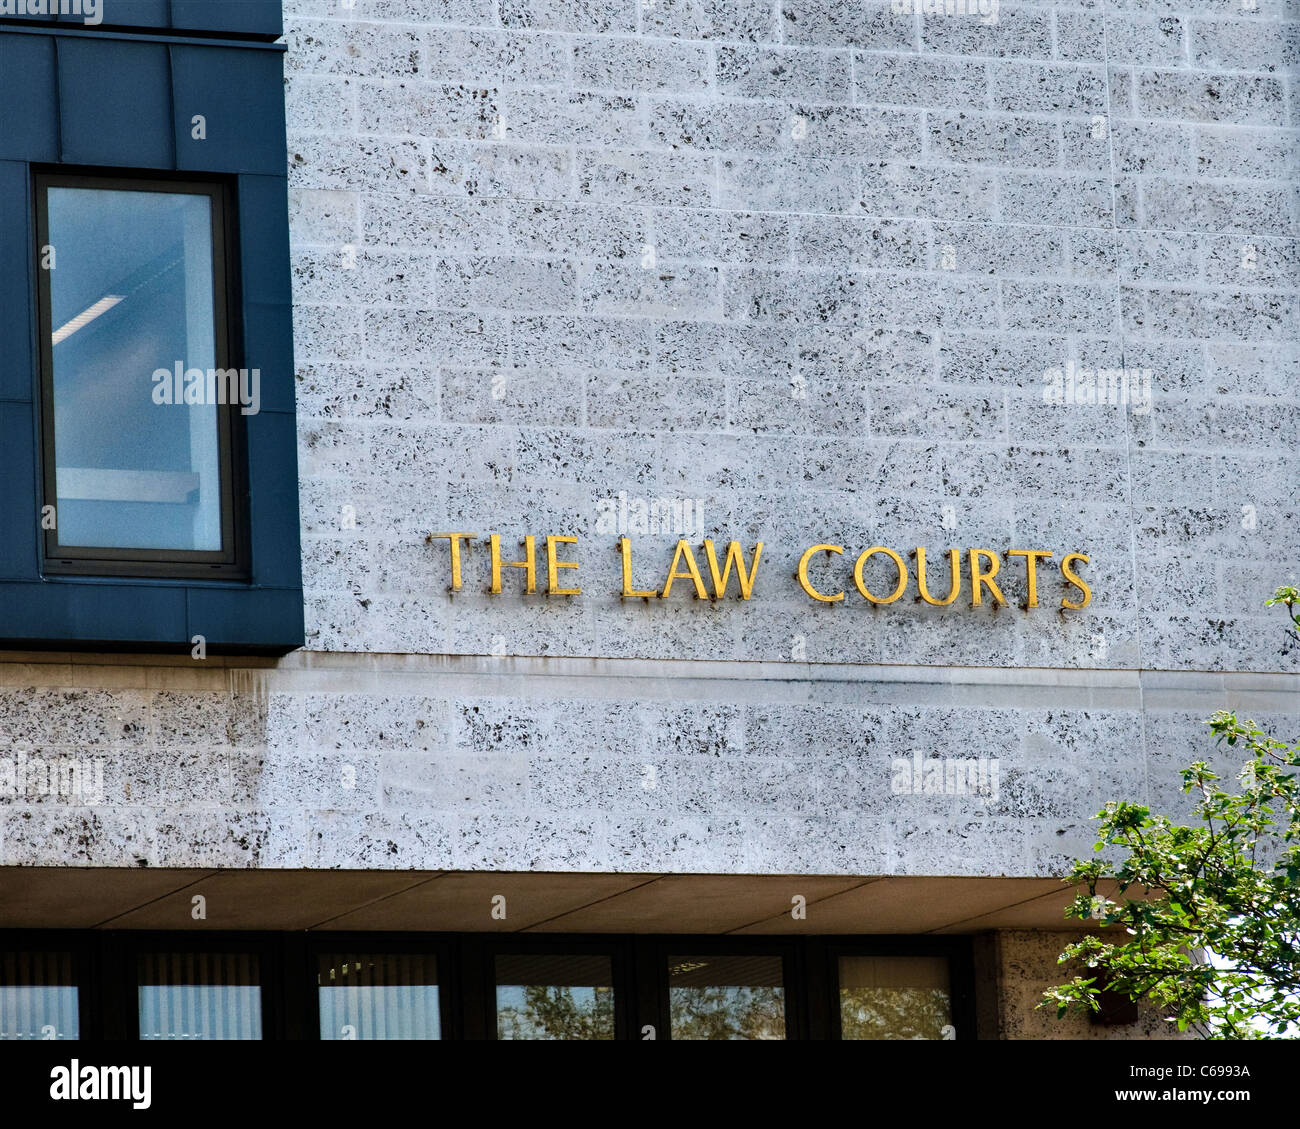 The Law Courts, Crown Court County Court Maidstone Kent - Stock Image